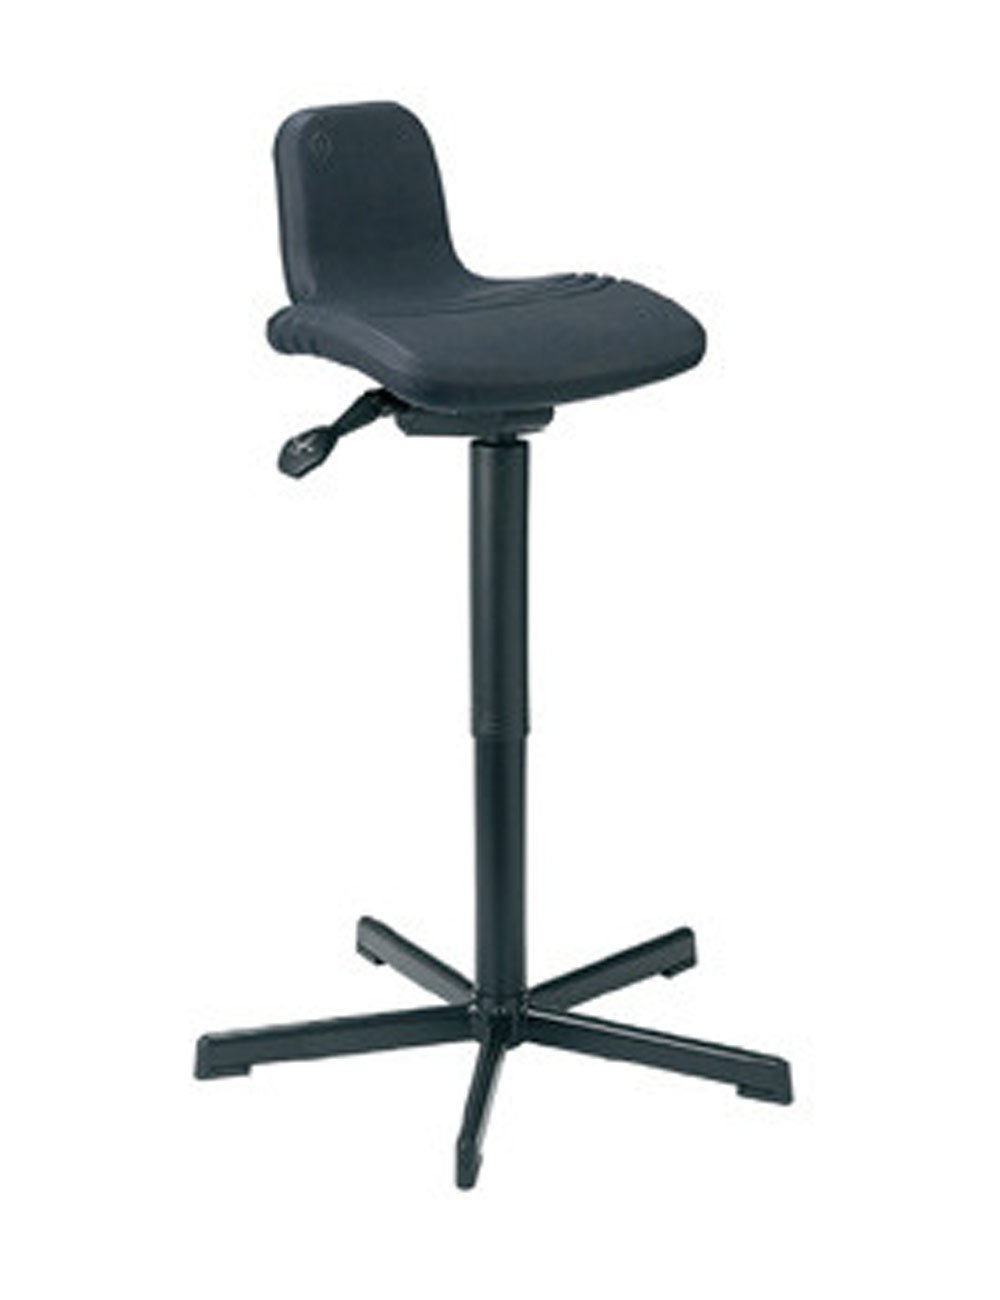 Score sit stand chair online ergonomics for Sitting chairs